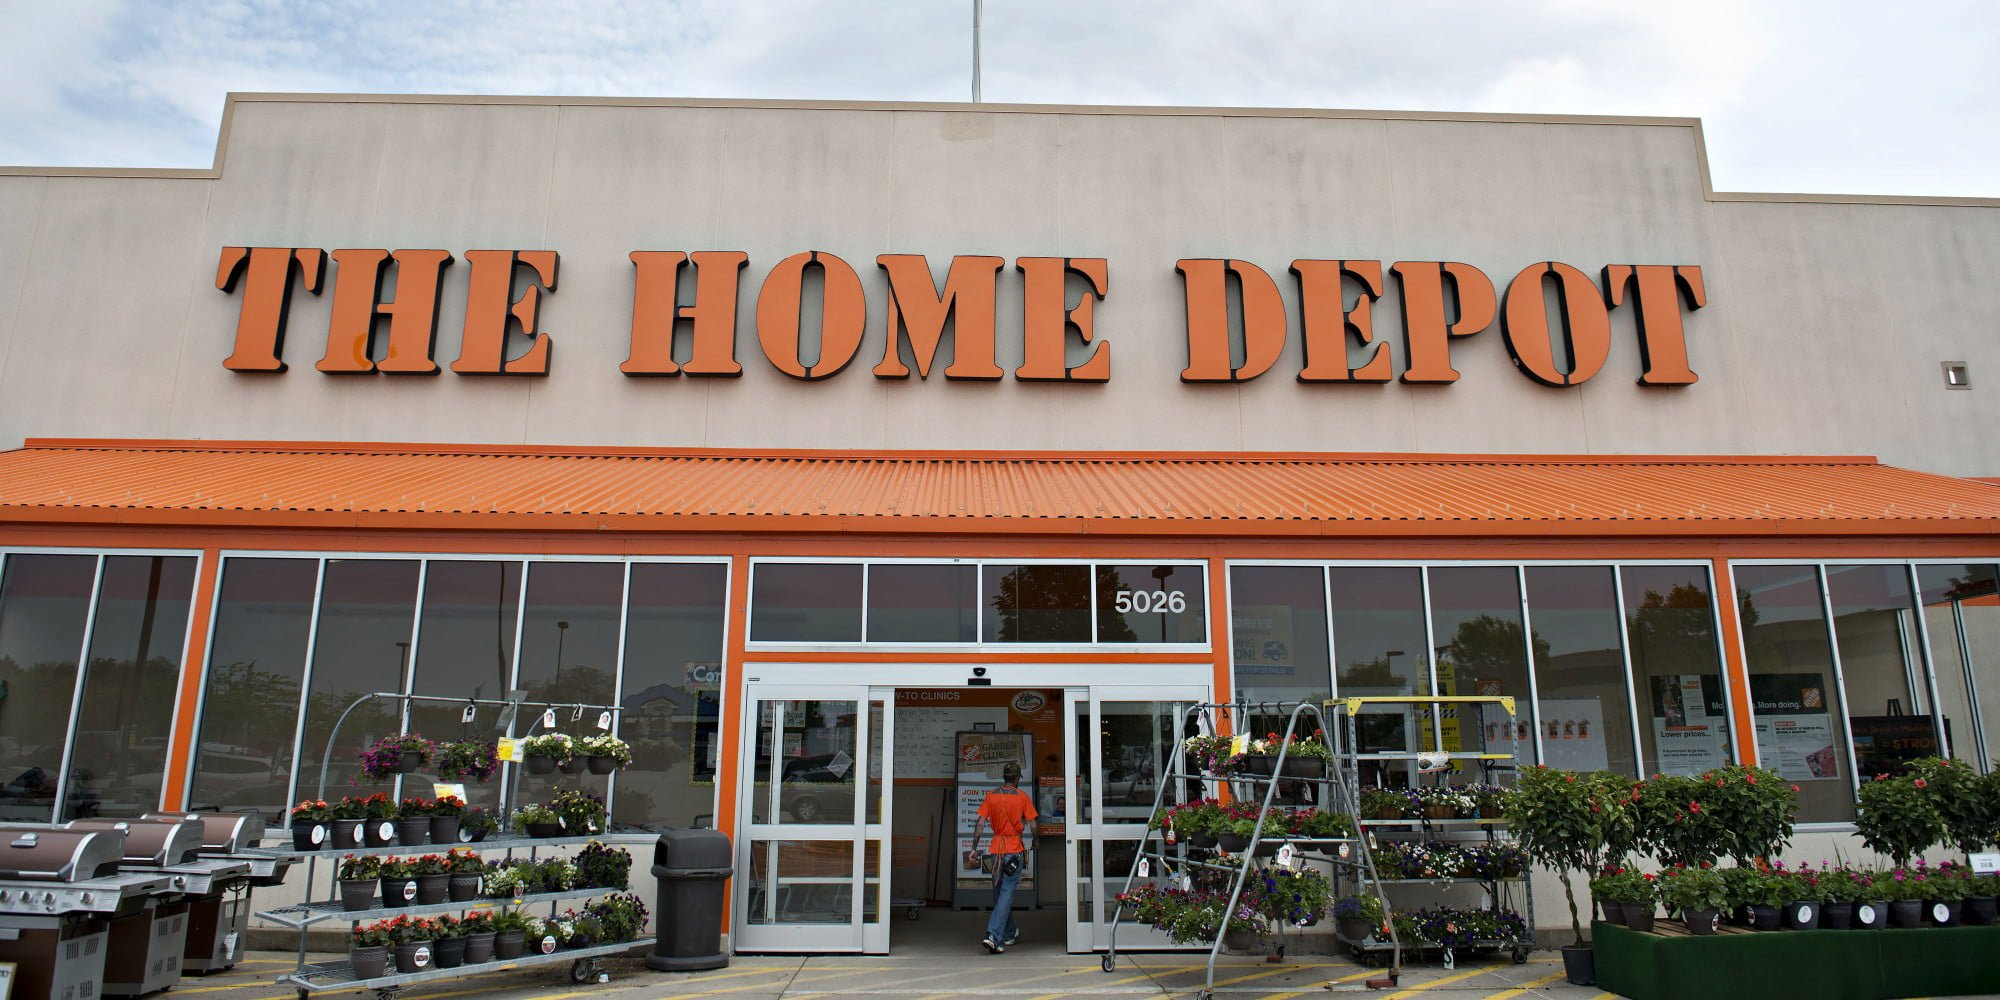 Home Depot 12Year Chart in Light of Stagnant Sales Forecast SRC